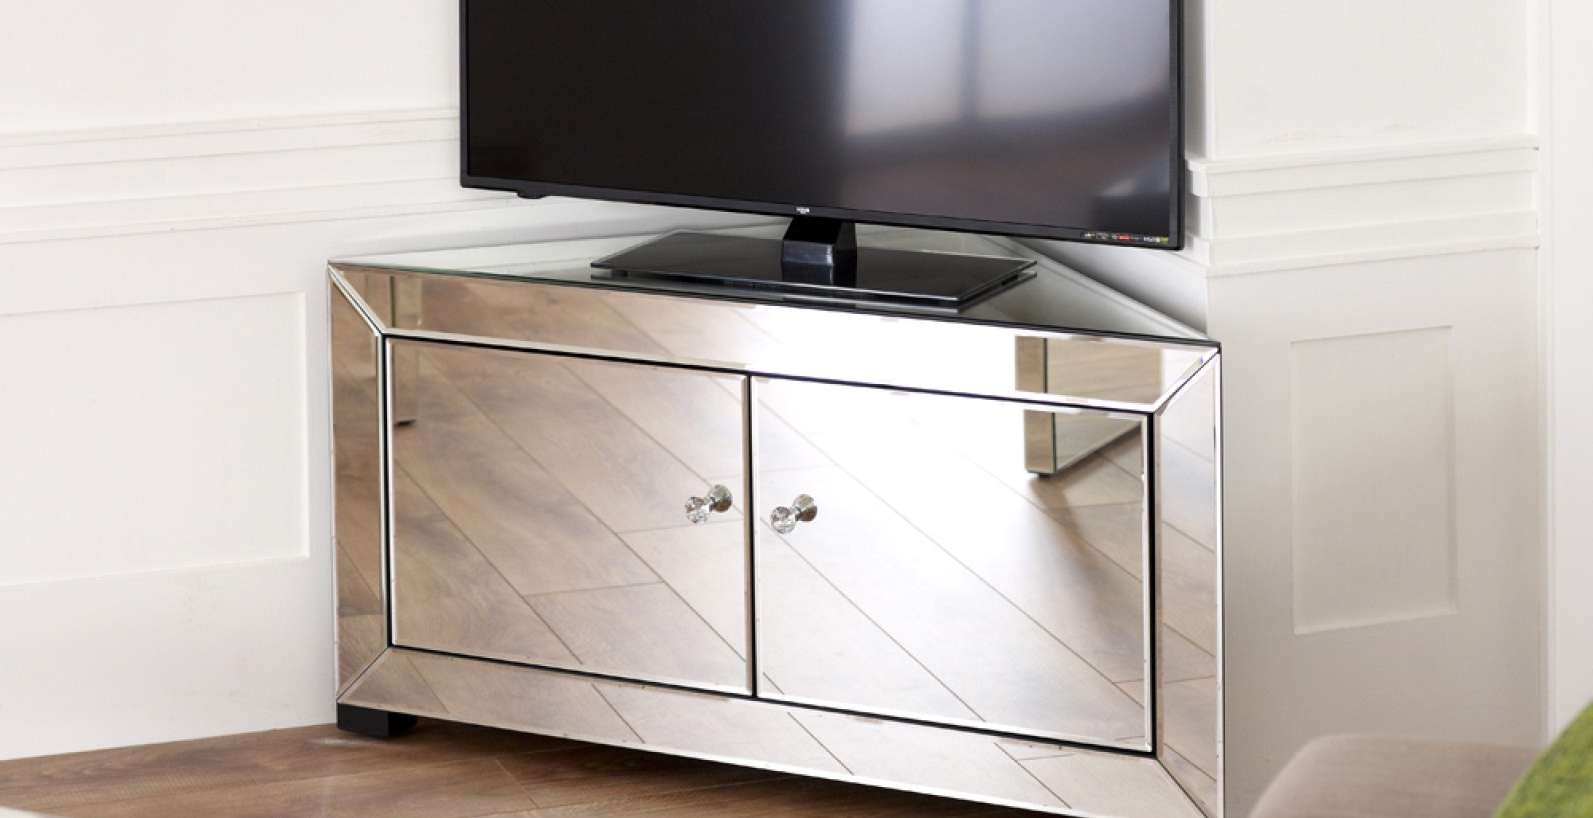 Tv : Breathtaking Corner Oak Tv Cabinets For Flat Screens With For Oak Tv Cabinets For Flat Screens With Doors (View 10 of 20)